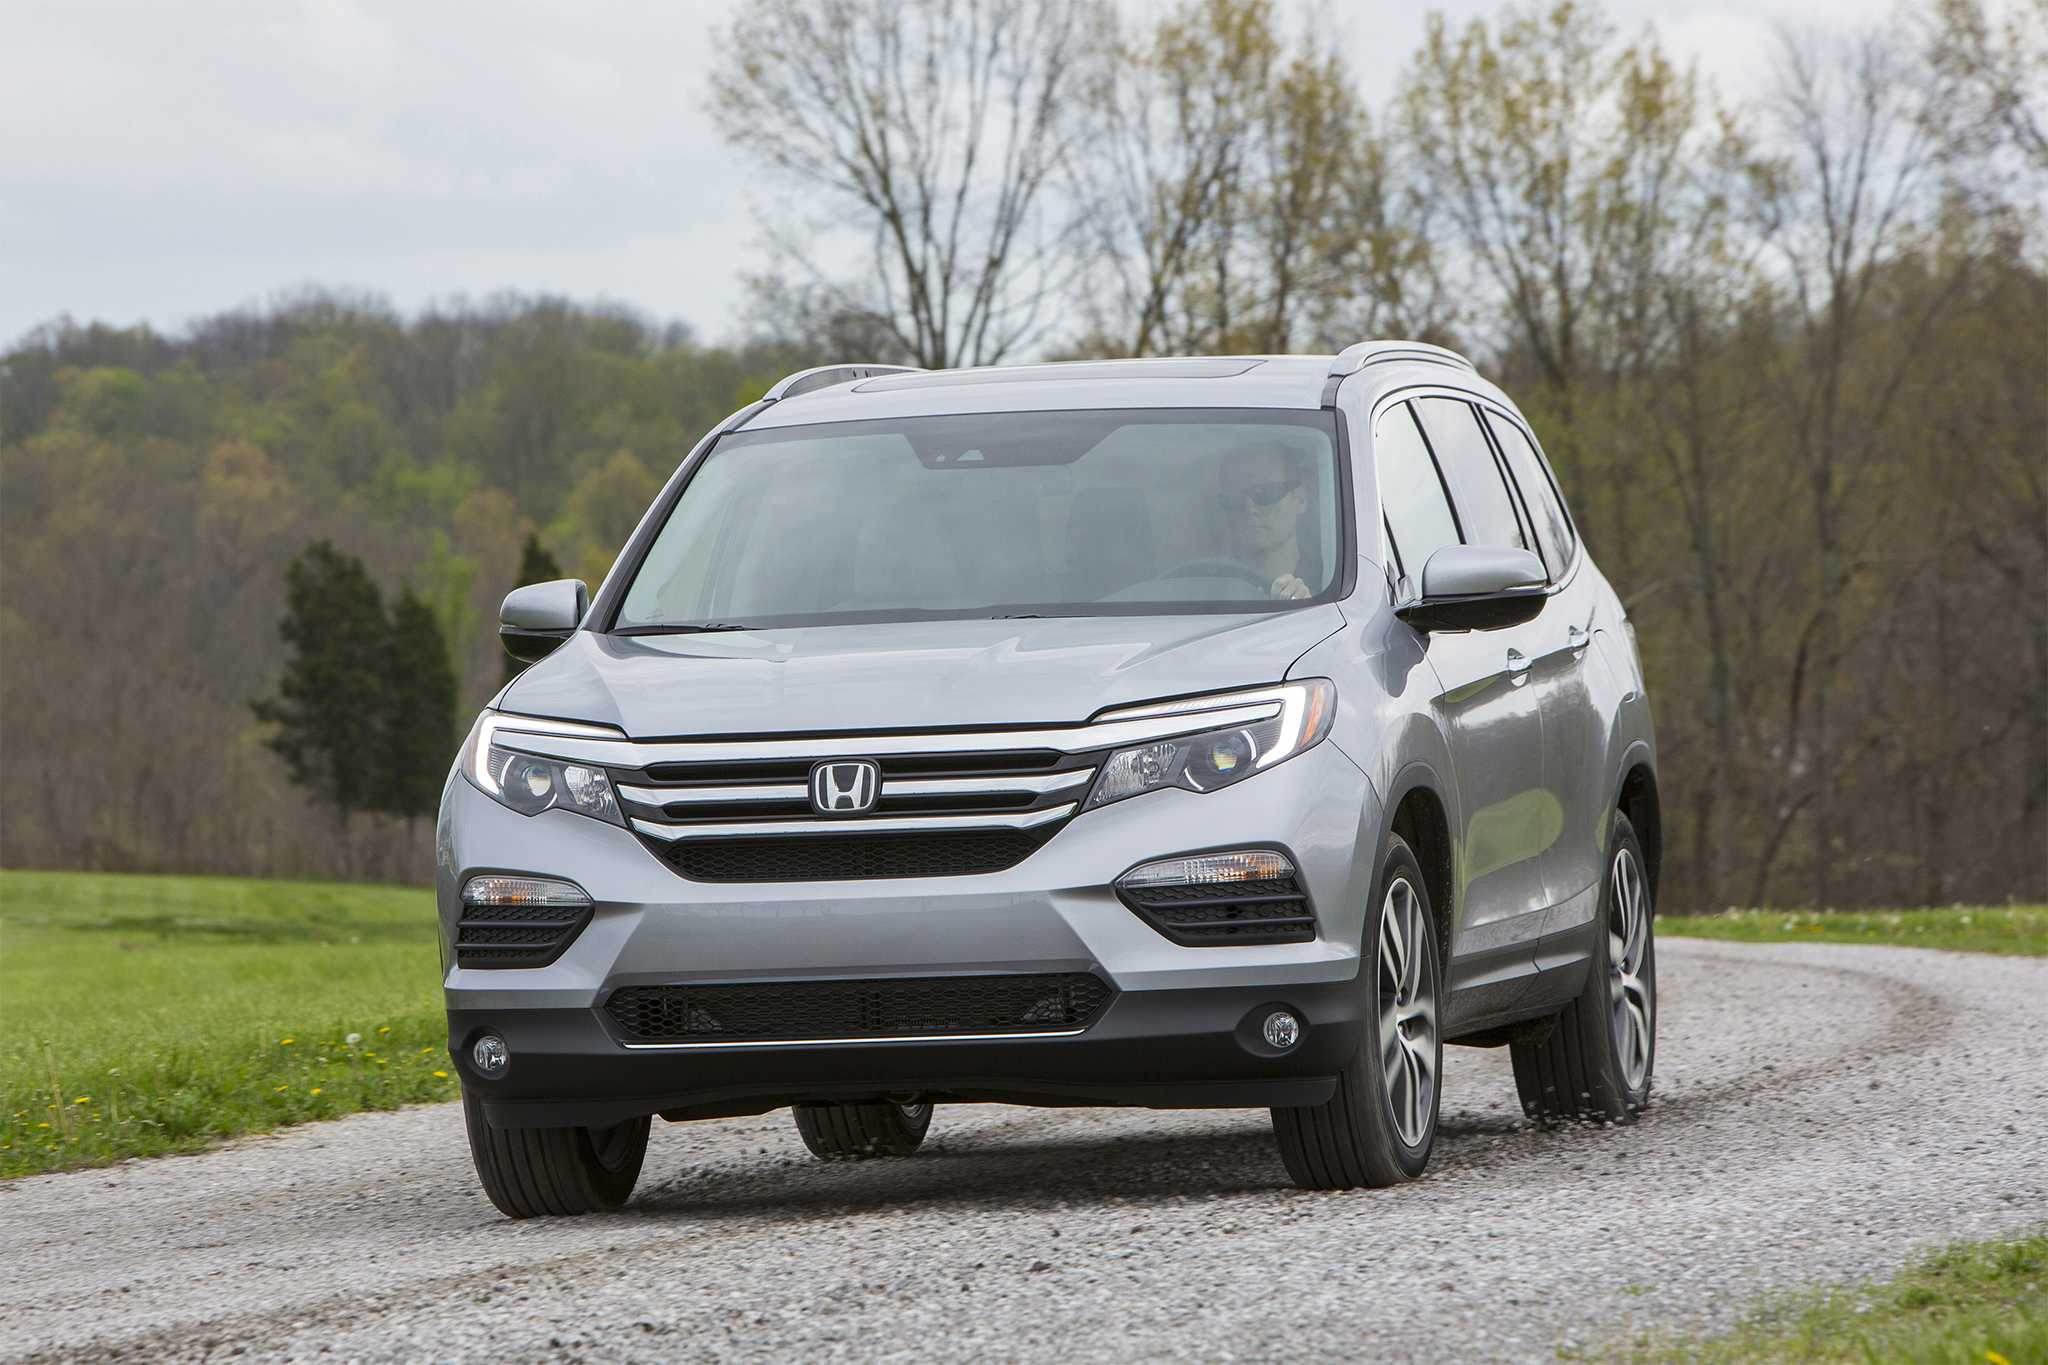 Honda Pilot refreshed with new technologies